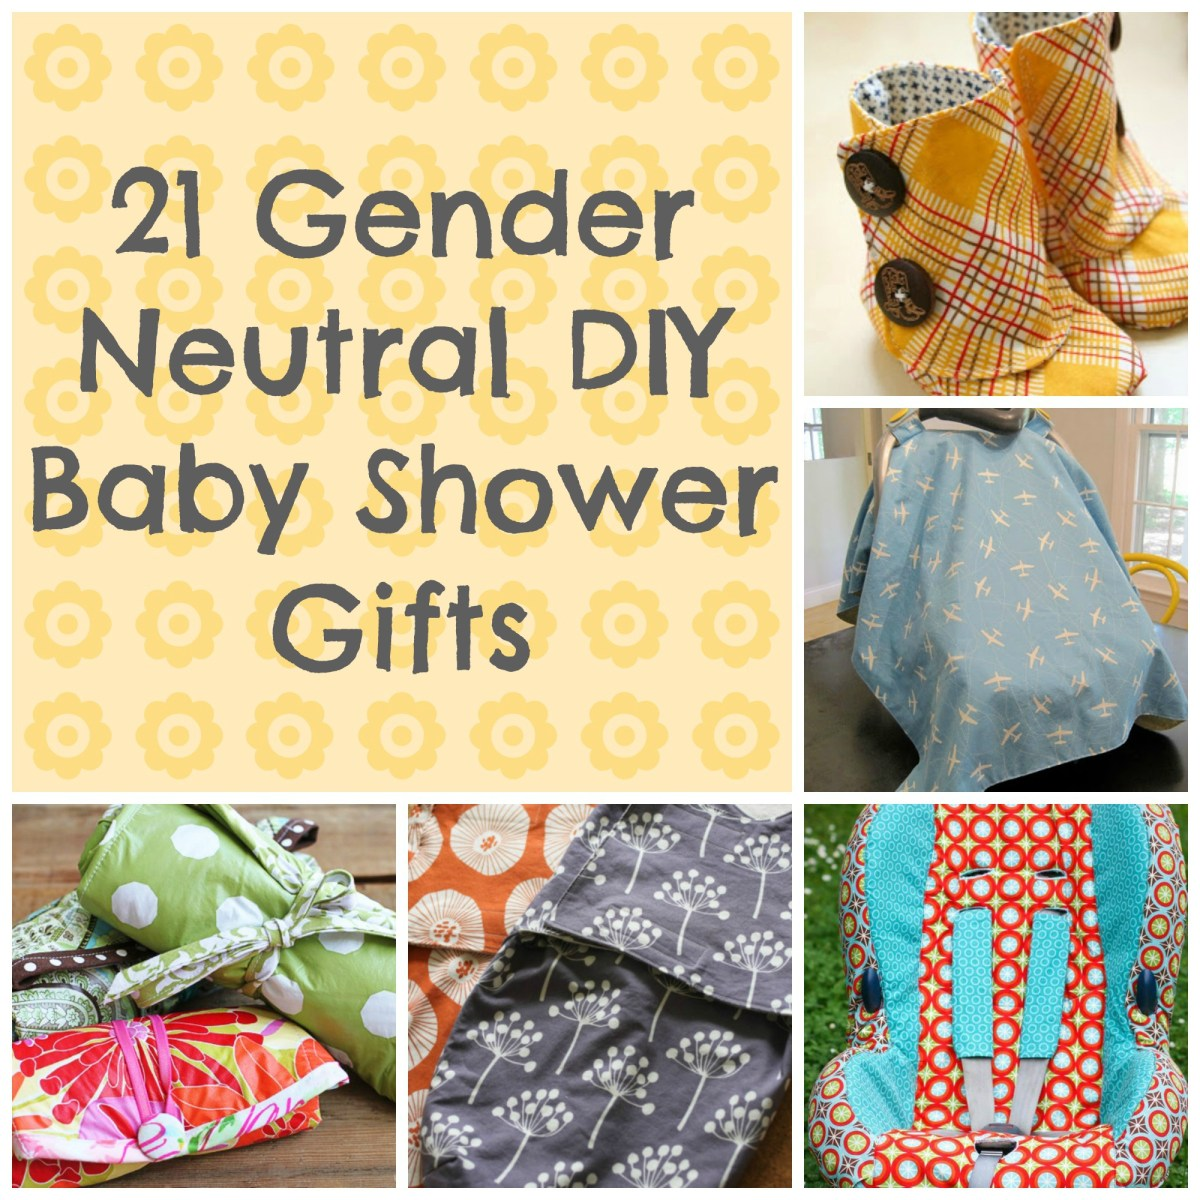 Baby Gifts For Gender Neutral : Awesome diy baby shower gift ideas that are gender neutral